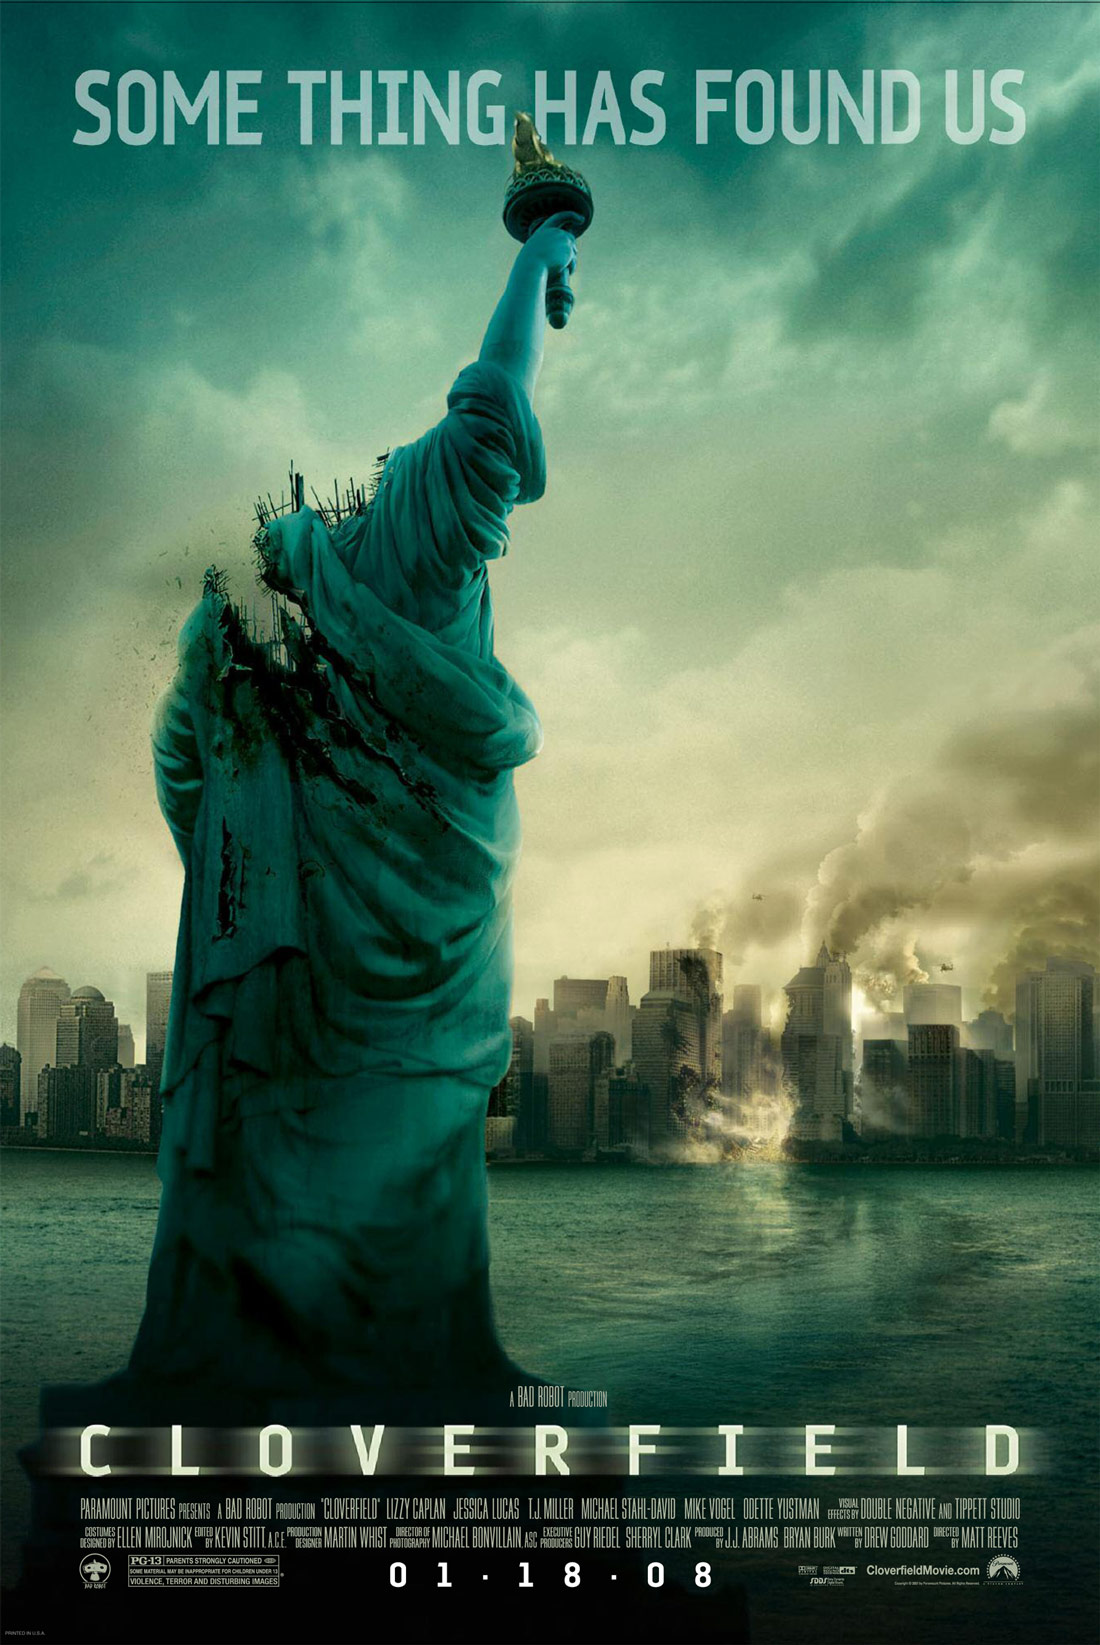 Image result for Cloverfield movie poster